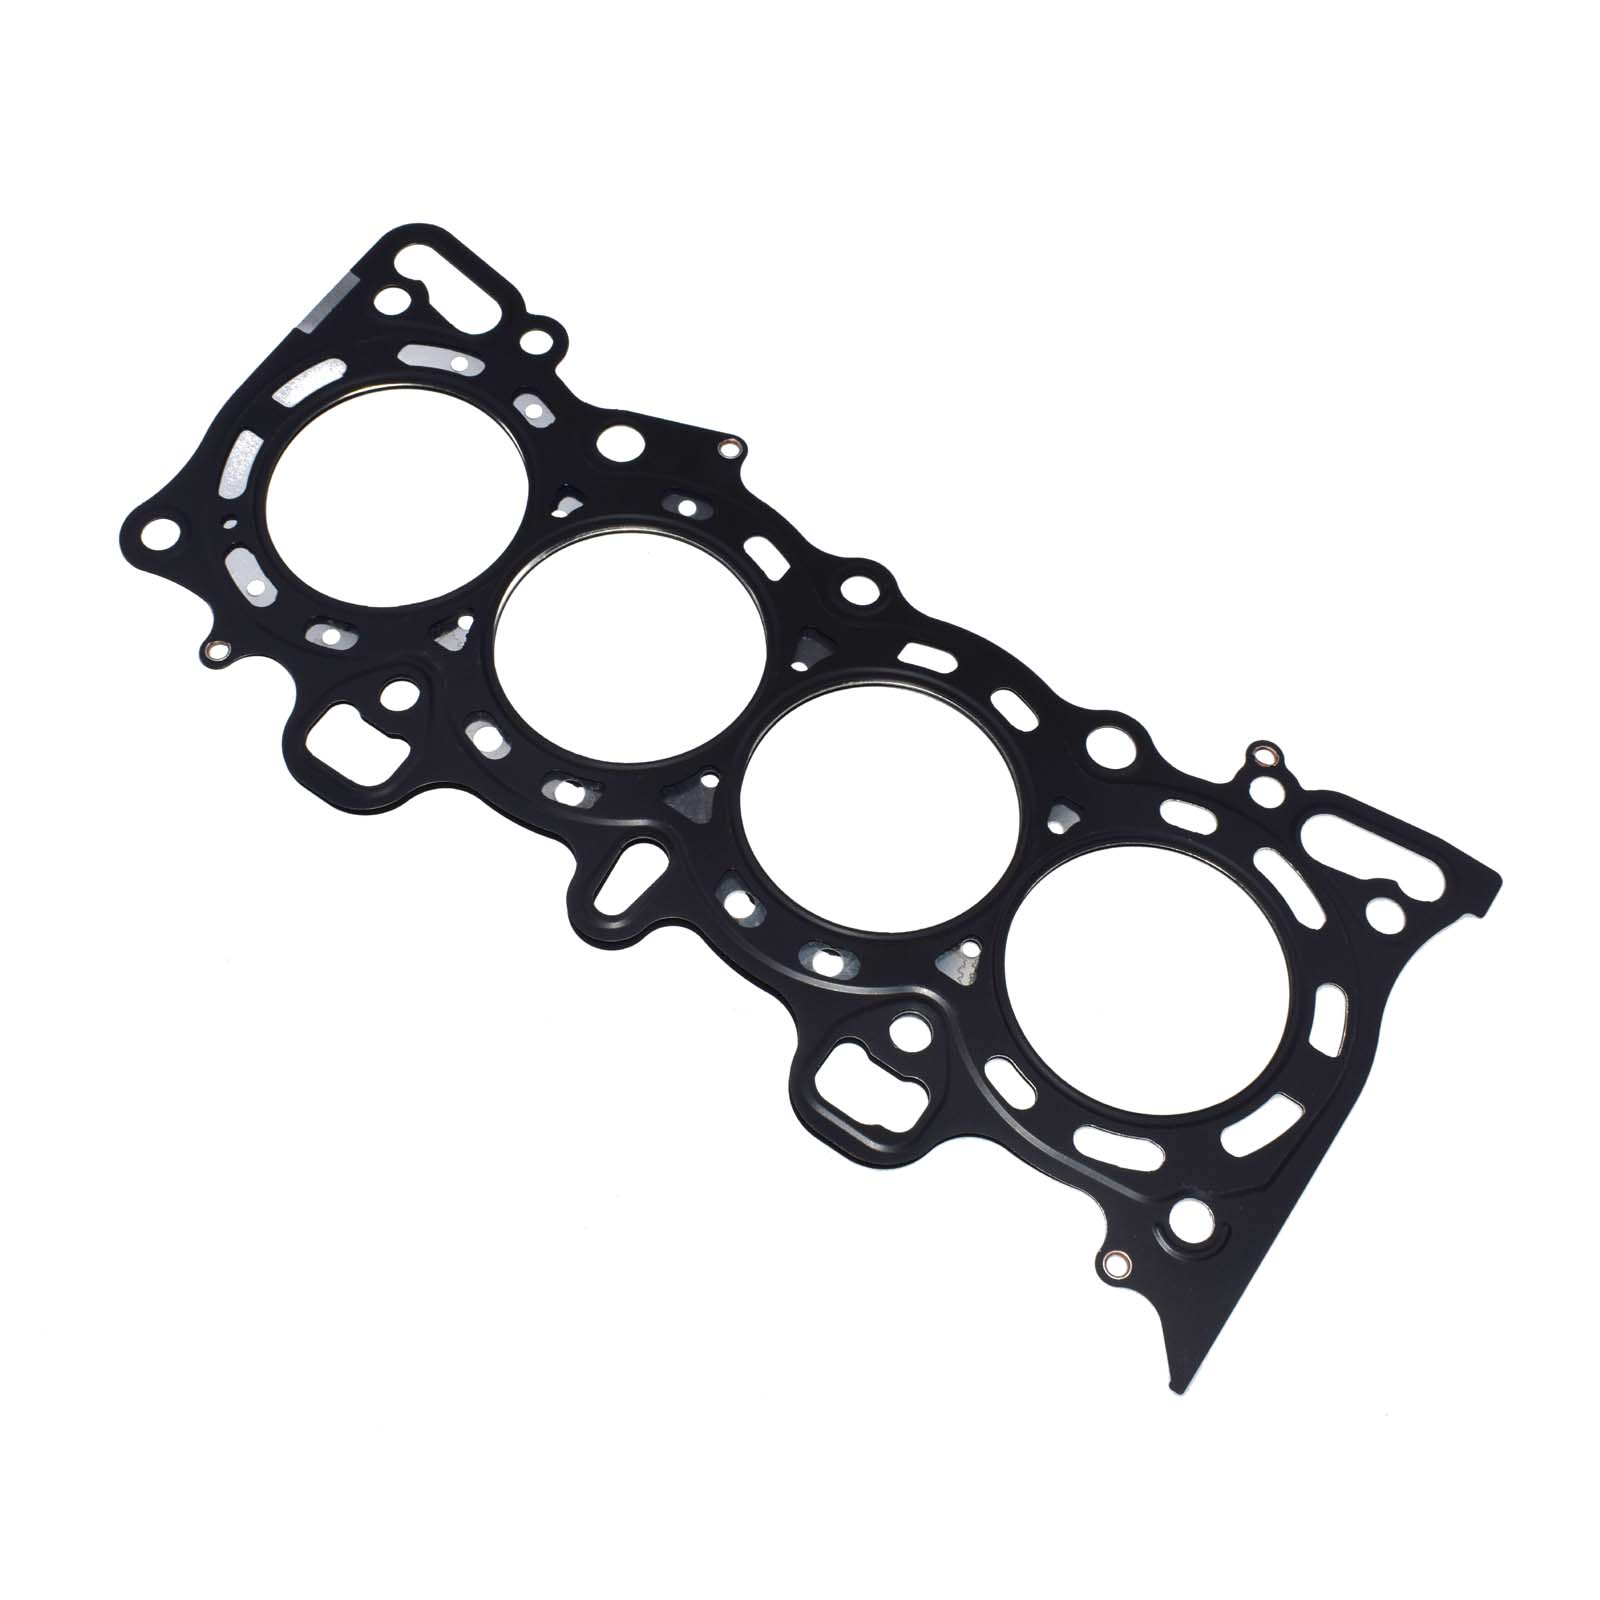 New Fit 1995-1998 Nissan 240SX 2.4 DOHC 16V Valve Cover Gasket VS50550R VS50338